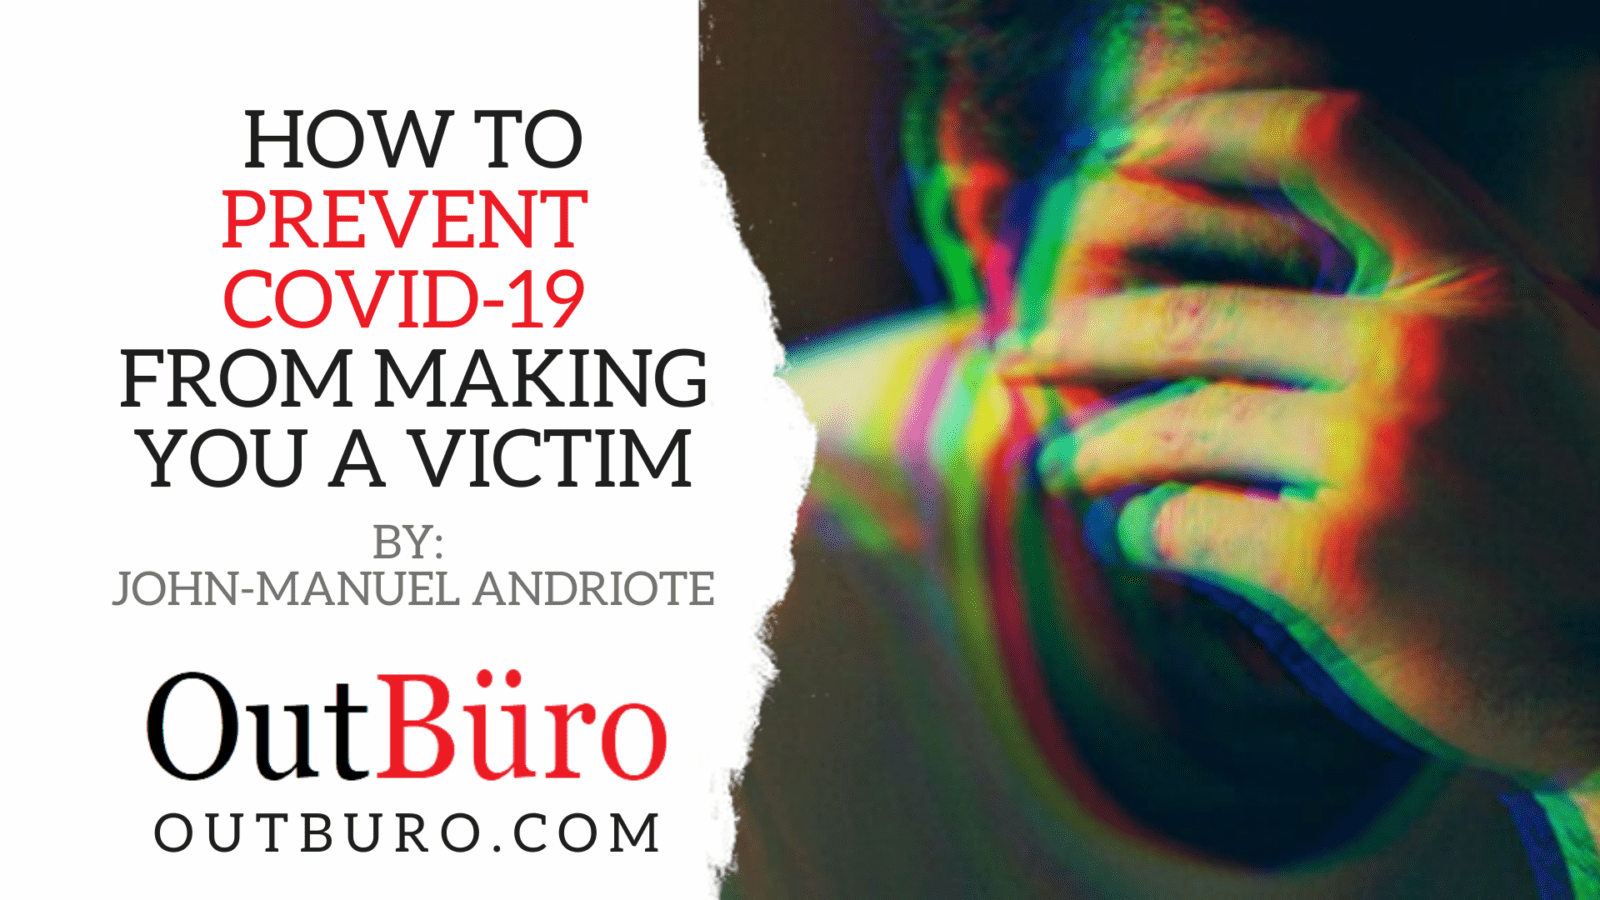 How to Prevent COVID-19 From Making You a Victim - John-Manuel Andriote - LGBTQ Mental Health - Professional Community Gay Lesbian Trans Bisexual Queer - OutBuro